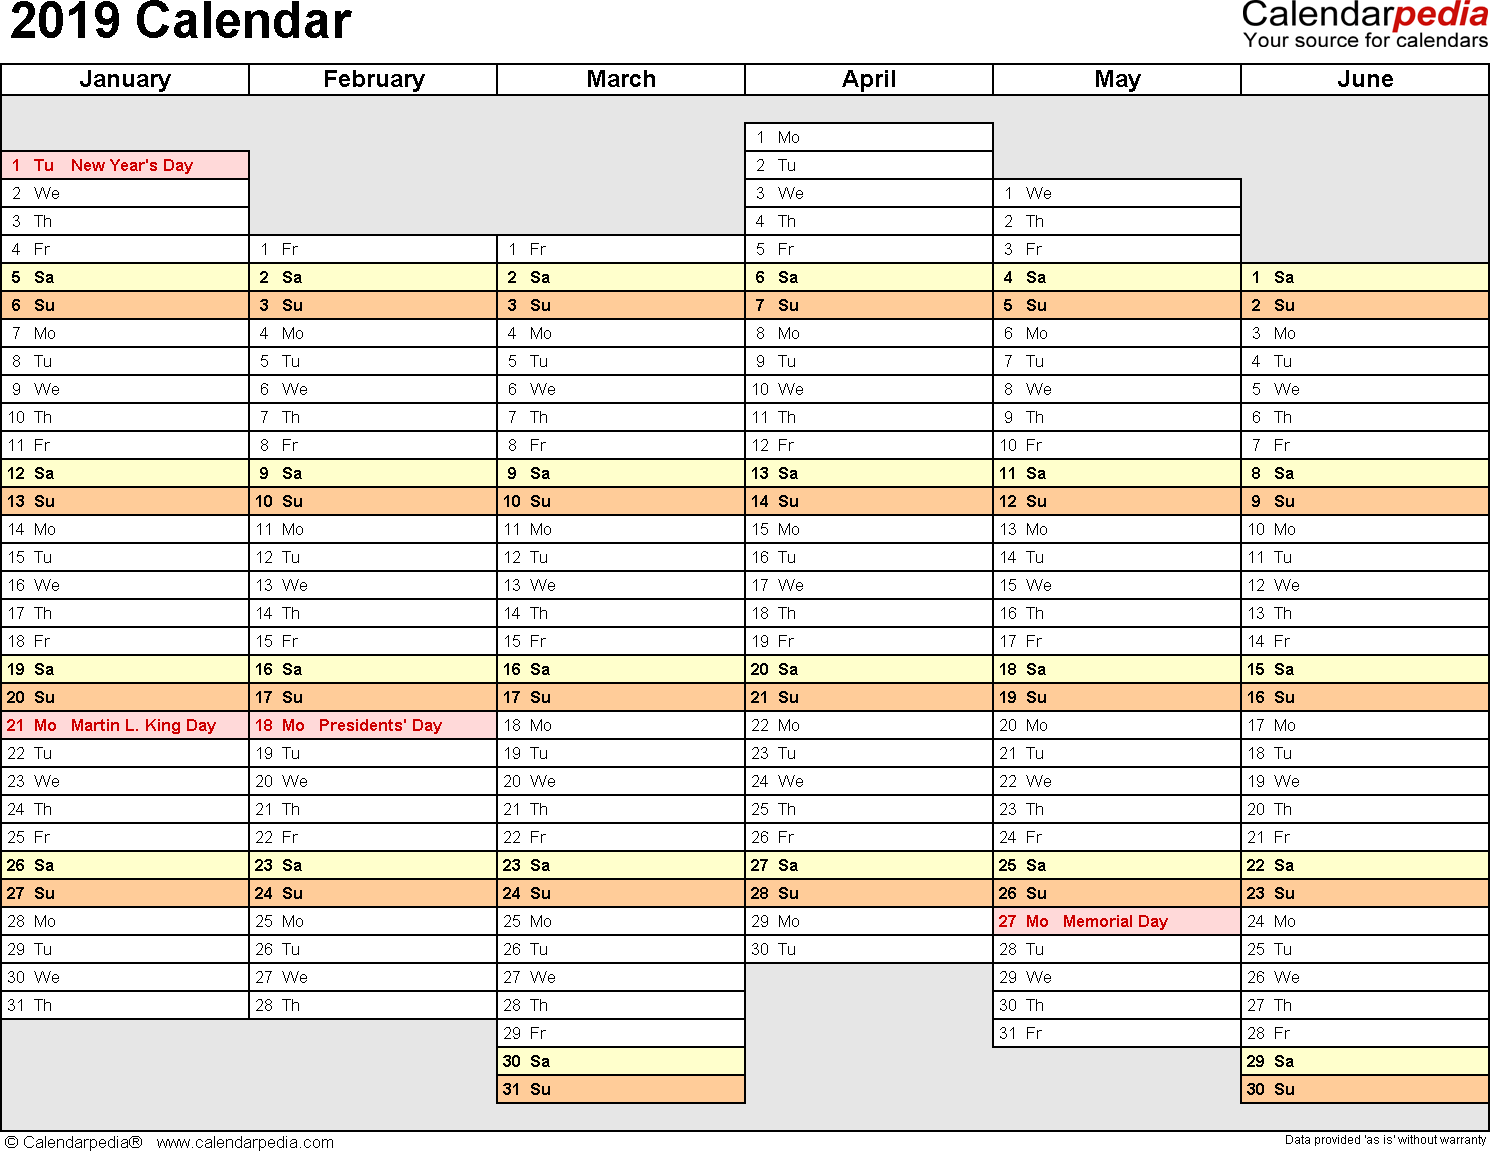 Template 4: 2019 Calendar for PDF, months horizontally, 2 pages, days of the week aligned/linear, landscape orientation